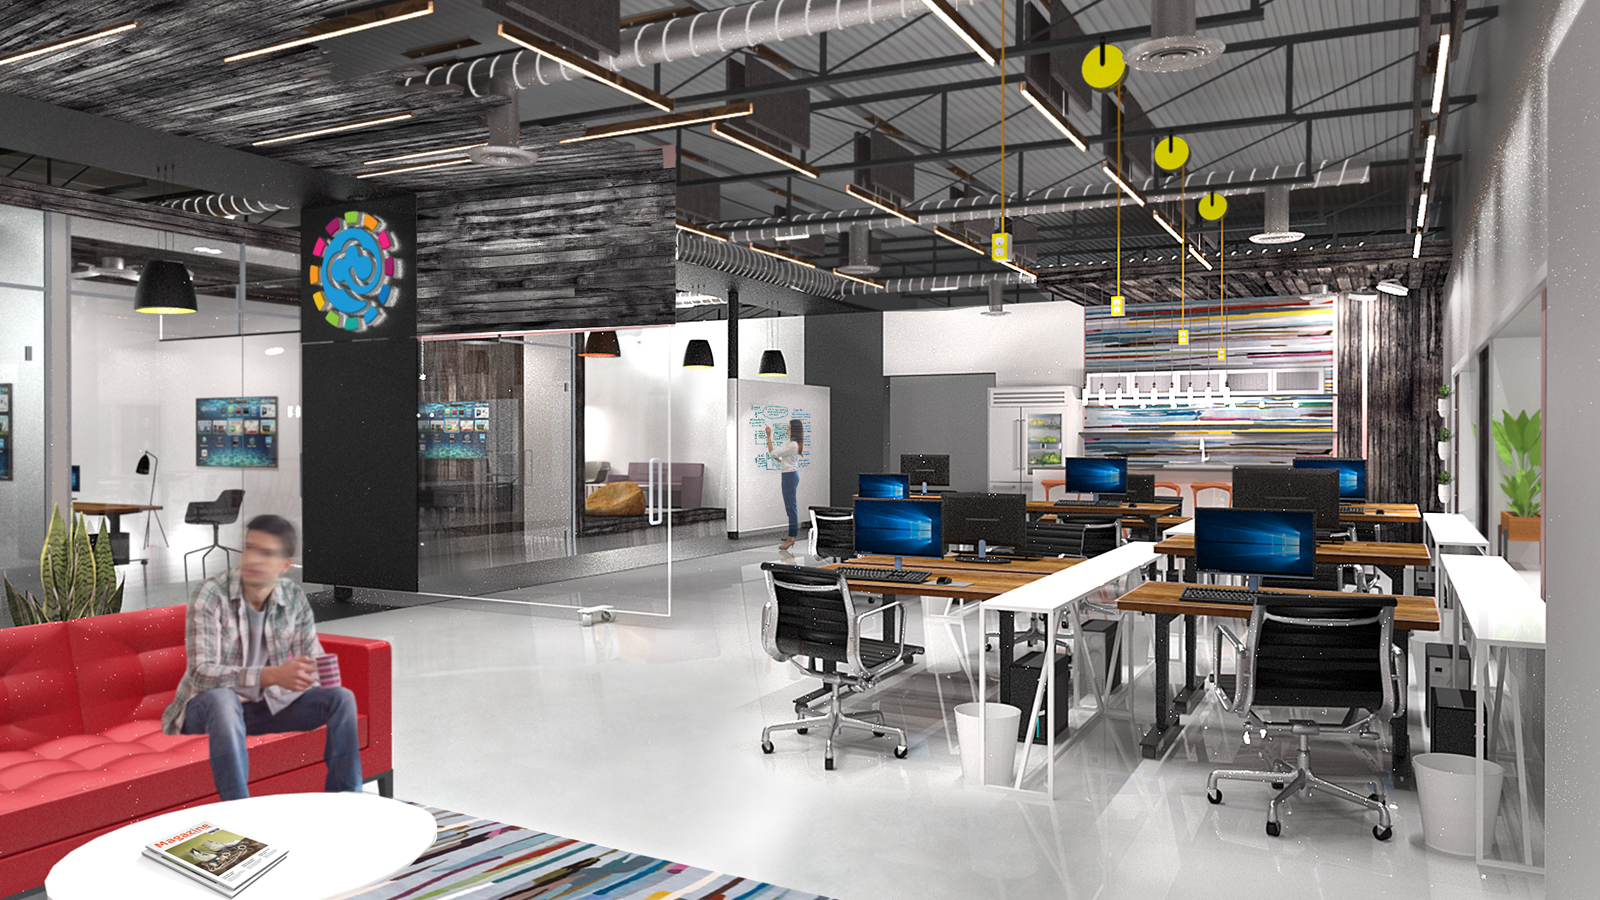 MNX_solutions_modern_IT_office_design_4.jpg